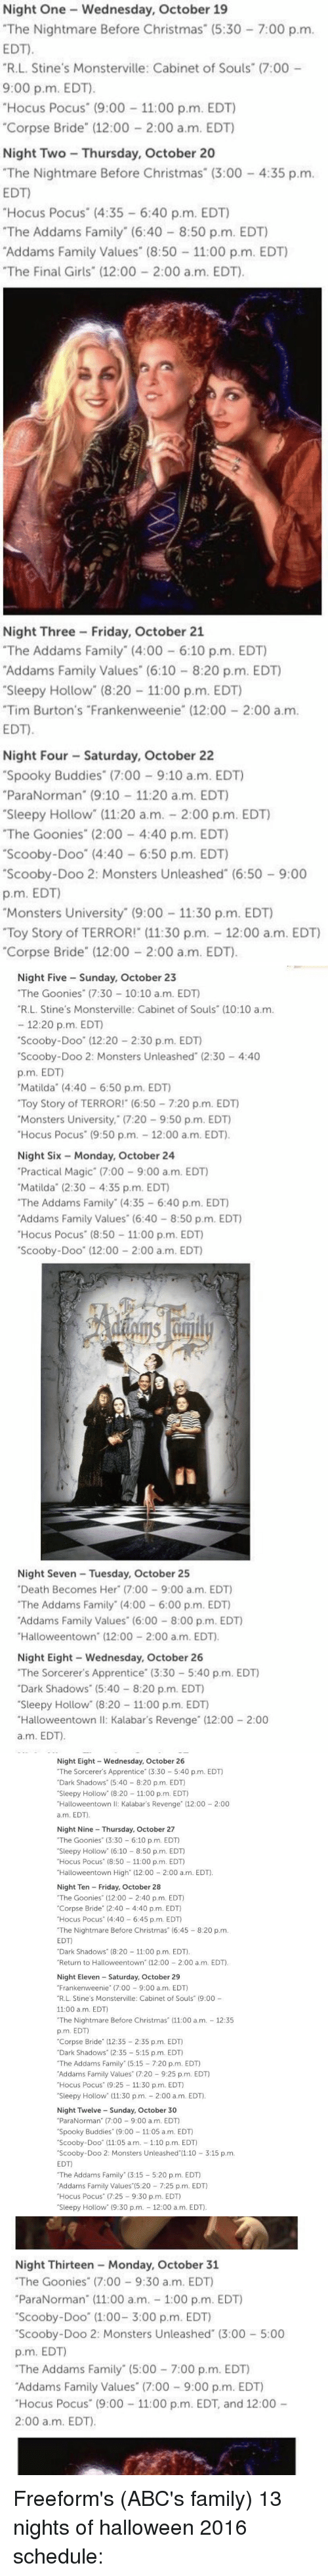 """Abc, Christmas, and Family: Night One Wednesday, October 19  """"The Nightmare Before Christmas (5:30 7:00 p.m.  EDT.  """"R.L. Stine's Monsterville: Cabinet of Souls"""" (7:00  9:00 p.m. EDT).  Hocus Pocus"""" (9:00 11:00 p.m. EDT)  """"Corpse Bride"""" (12:00 2:00 a.m. EDT)  Night Two Thursday, October 20  """"The Nightmare Before Christmas"""" (3:00 4:35 p.m.  EDT)  """"Hocus Pocus"""" (4:35 6:40 p.m. EDT)  """"The Addams Family"""" (6:40 8:50 p.m. EDT)  Addams Family Values (8:50 11:00 p.m. EDT)  """"The Final Girls"""" (12:00 2:00 a.m. EDT).  Night Three Friday, October 21  """"The Addams Family (4:00 6:10 p.m. EDT)  Addams Family Values"""" (6:10 8:20 p.m. EDT)  """"Sleepy Hollow"""" (8:20 11:00 p.m. EDT)  """"Tim Burton's """"Frankenweenie"""" (12:00 2:00 a m.  EDT.  Night Four Saturday, October 22  """"Spooky Buddies"""" (7:00 9:10 a.m. EDT)  """"ParaNorman"""" (9:10 11:20 a.m. EDT)  Sleepy Hollow"""" (11:20 a.m. 2:00 p.m. EDT)  """"The Goonies"""" (2:00 4:40 p.m. EDT)  """"Scooby-Doo"""" (4:40 6:50 p.m. EDT)  """"Scooby-Doo 2: Monsters Unleashed (6:50 9:00  p.m. EDT)  """"Monsters University (9:00 11:30 p.m. EDT)  """"Toy Story of TERROR! (11:30 p.m. 12:00 a.m. EDT)  """"Corpse Bride"""" (12:00 2:00 a.m. EDT)   Night Five Sunday, October 23  """"The Goonies"""" (7:30 10:10 a.m. EDT  """"R L. Stine's Monsterville: Cabinet of Souls (10:10 a.m.  12:20 p.m. EDT  """"Scooby-Doo"""" (12:20 2:30 p.m. EDT)  """"Scooby-Doo 2: Monsters Unleashed (2:30 4:40  p.m. EDT)  """"Matilda"""" (4:40 6:50 p.m. EDT)  """"Toy Story of TERROR! (6:50 7:20 p.m. EDT)  Monsters University,"""" (7:20 9:50 p.m. EDT)  Hocus Pocus"""" (9:50 p.m. 12:00 a.m. EDT  Night Six Monday, October 24  """"Practical Magic (7:00 9:00 a.m. EDT)  """"Matilda (2:30 4:35 p.m. EDT)  """"The Addams Family"""" (4:35 6:40 p.m. EDT)  Addams Family Values"""" (6:40 8:50 p.m. EDT)  """"Hocus Pocus"""" (8:50 11:00 p.m. EDT)  """"Scooby-Doo"""" (12:00 2:00 a.m. EDT)  Night Seven Tuesday, October 25  """"Death Becomes Her"""" (7:00 9:00 a m. EDT)  """"The Addams Family"""" (4:00 6:00 p.m. EDT)  Addams Family Values"""" (6:00 8:00 p.m. EDT)  """"Halloweentown' (12:00 2:00 a.m. EDT).  Night Eight"""